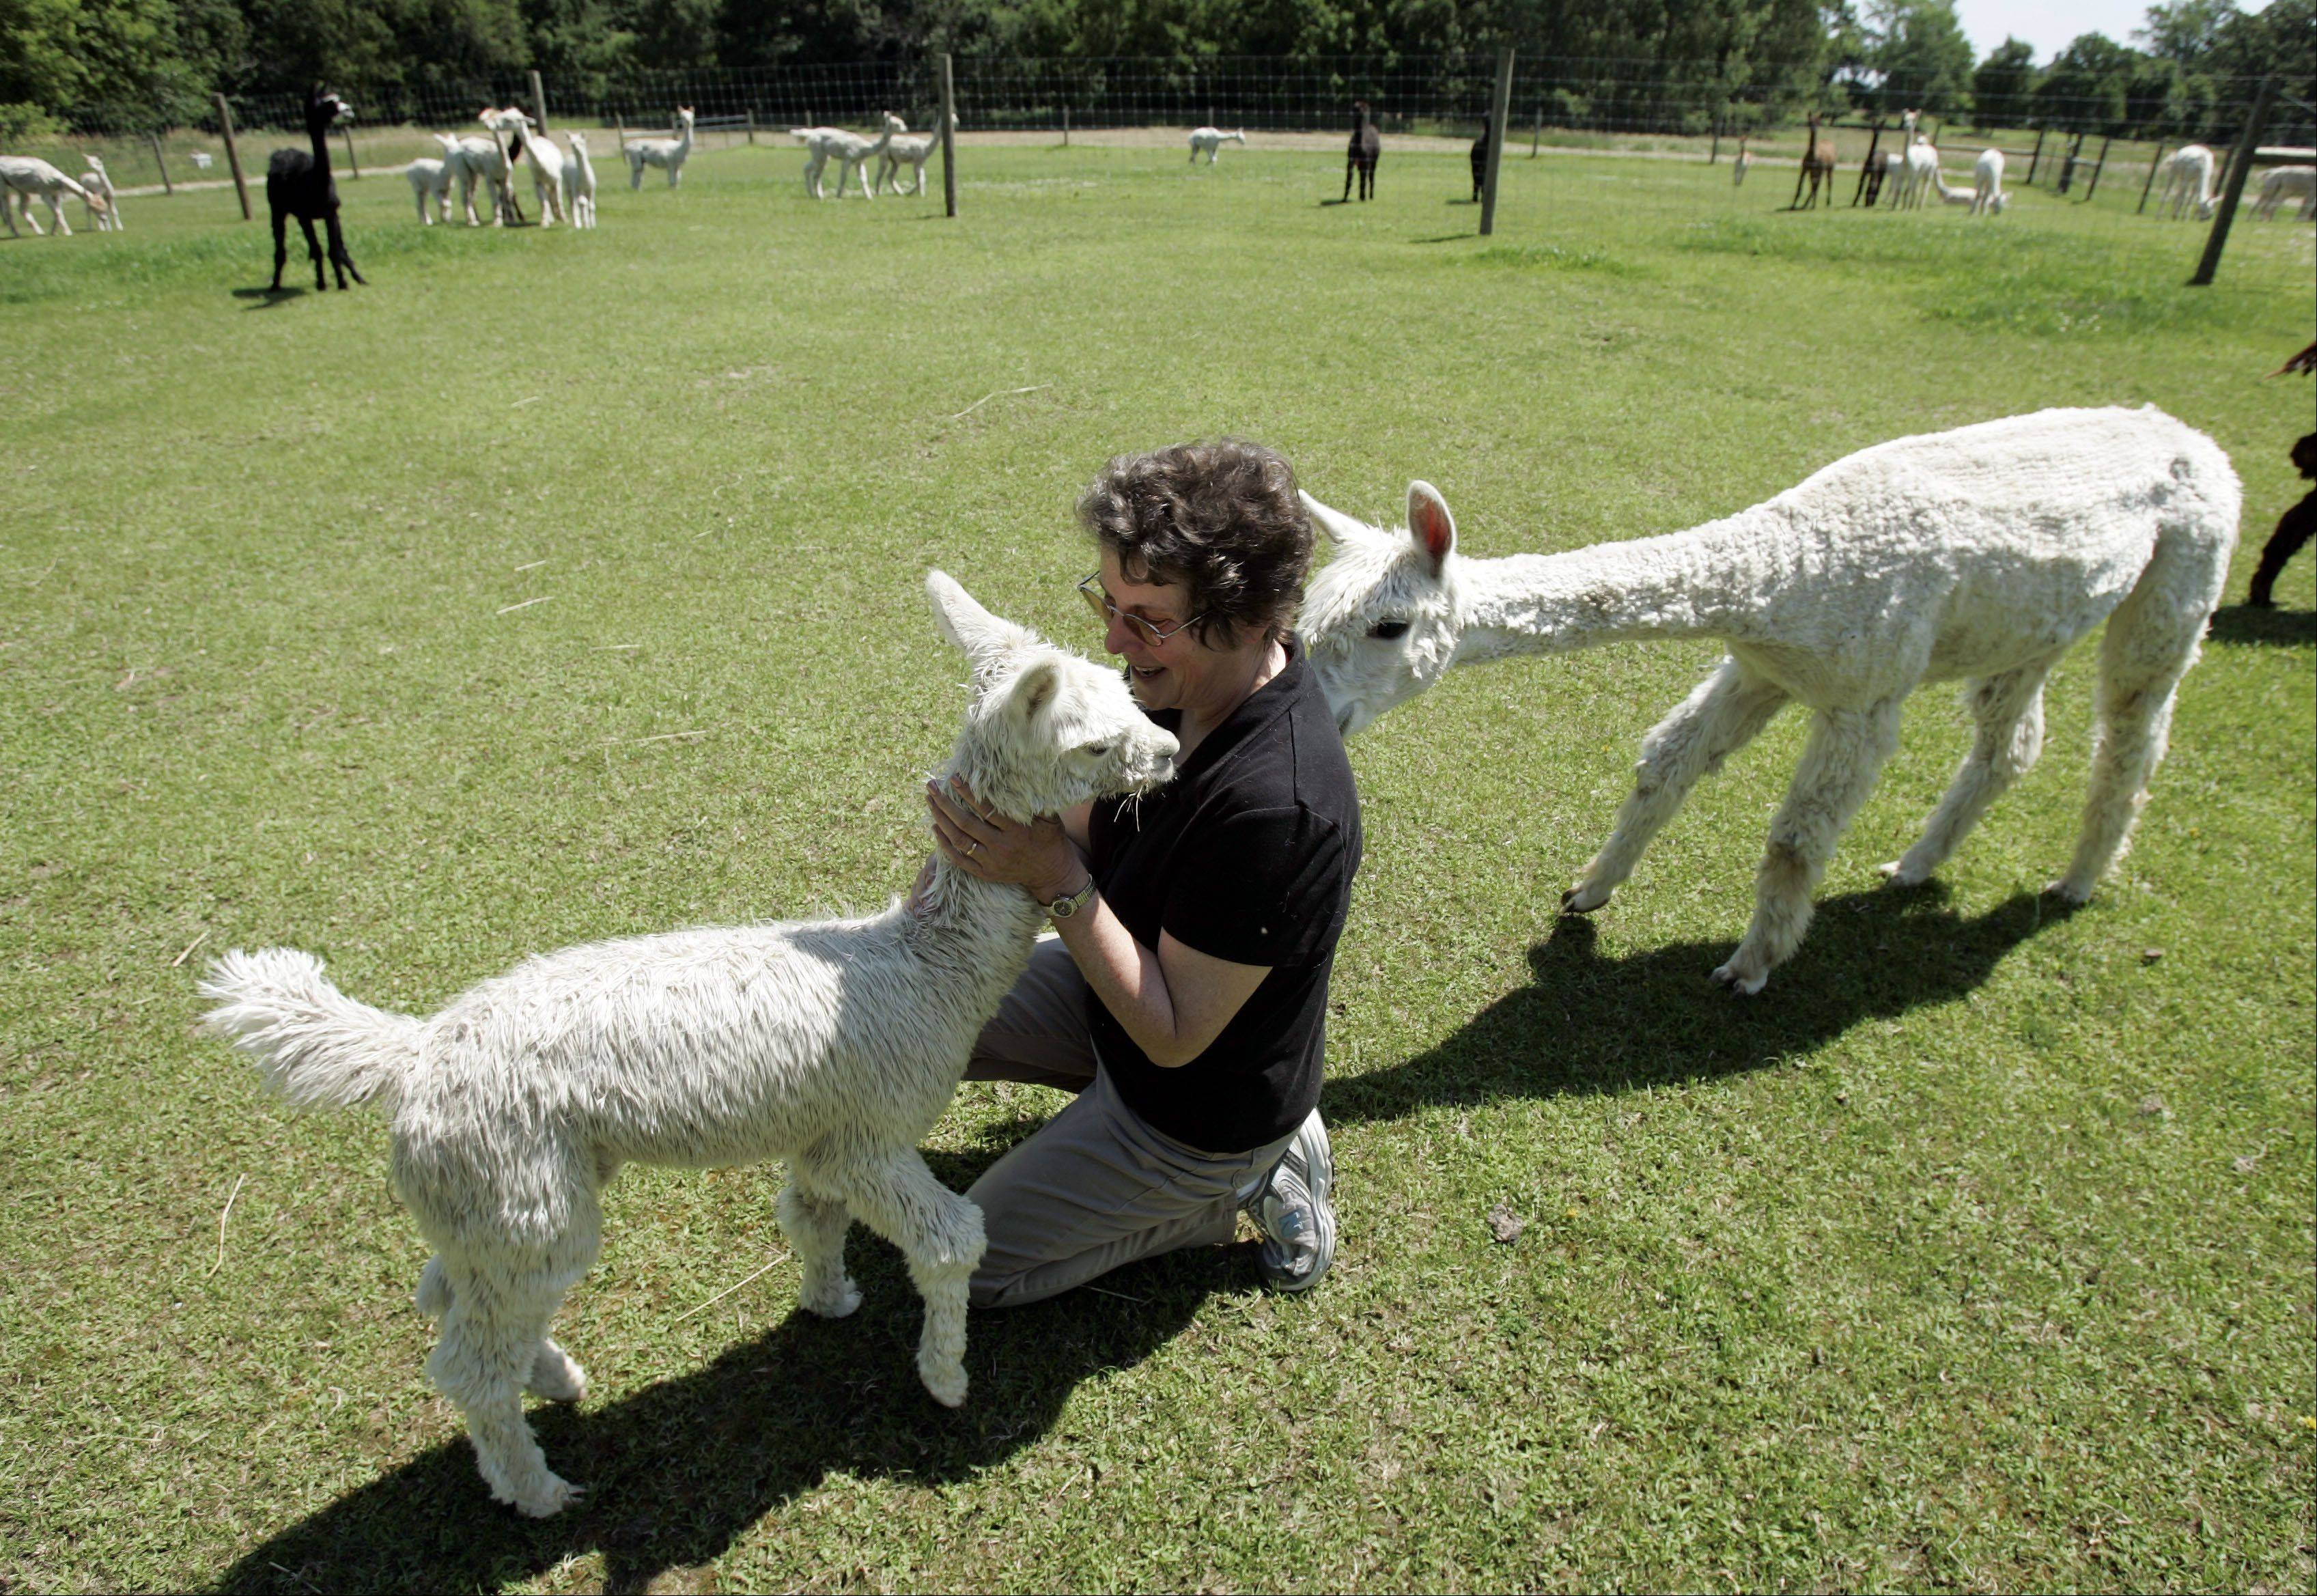 Susan Waldron says alpacas are affectionate on their own terms, like cats, and will come up and nuzzle you if they like you.